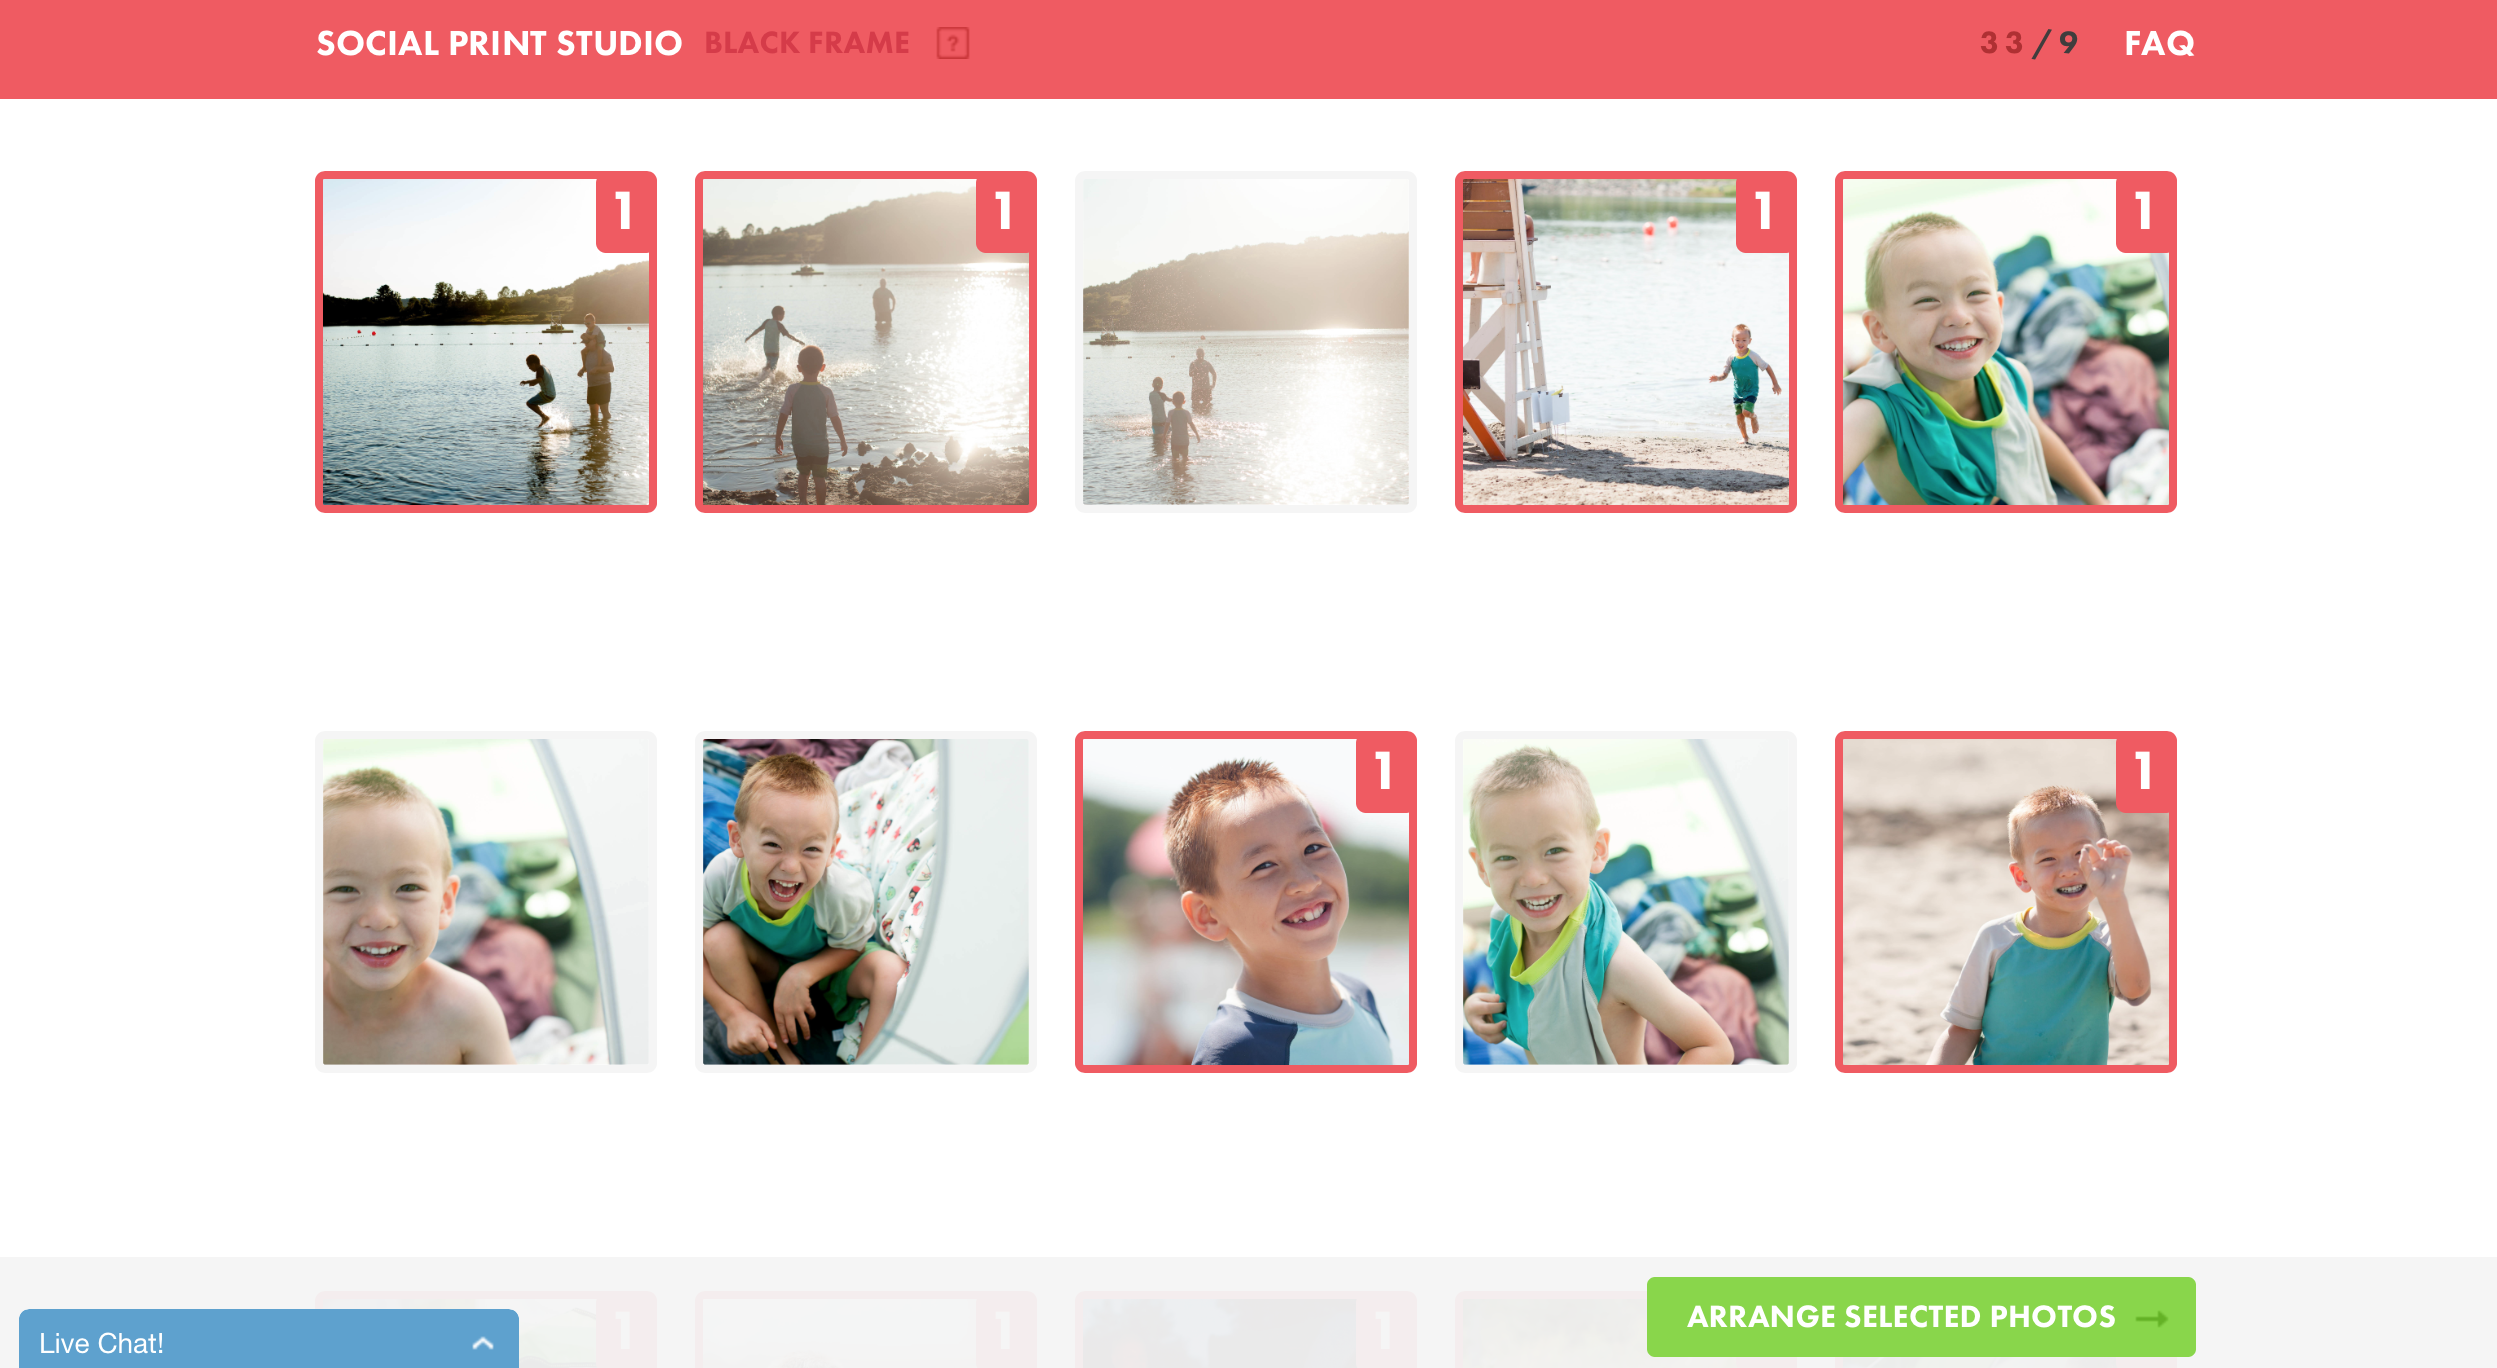 You can upload your photos and narrow down your selection right within the Social Print Studio website.